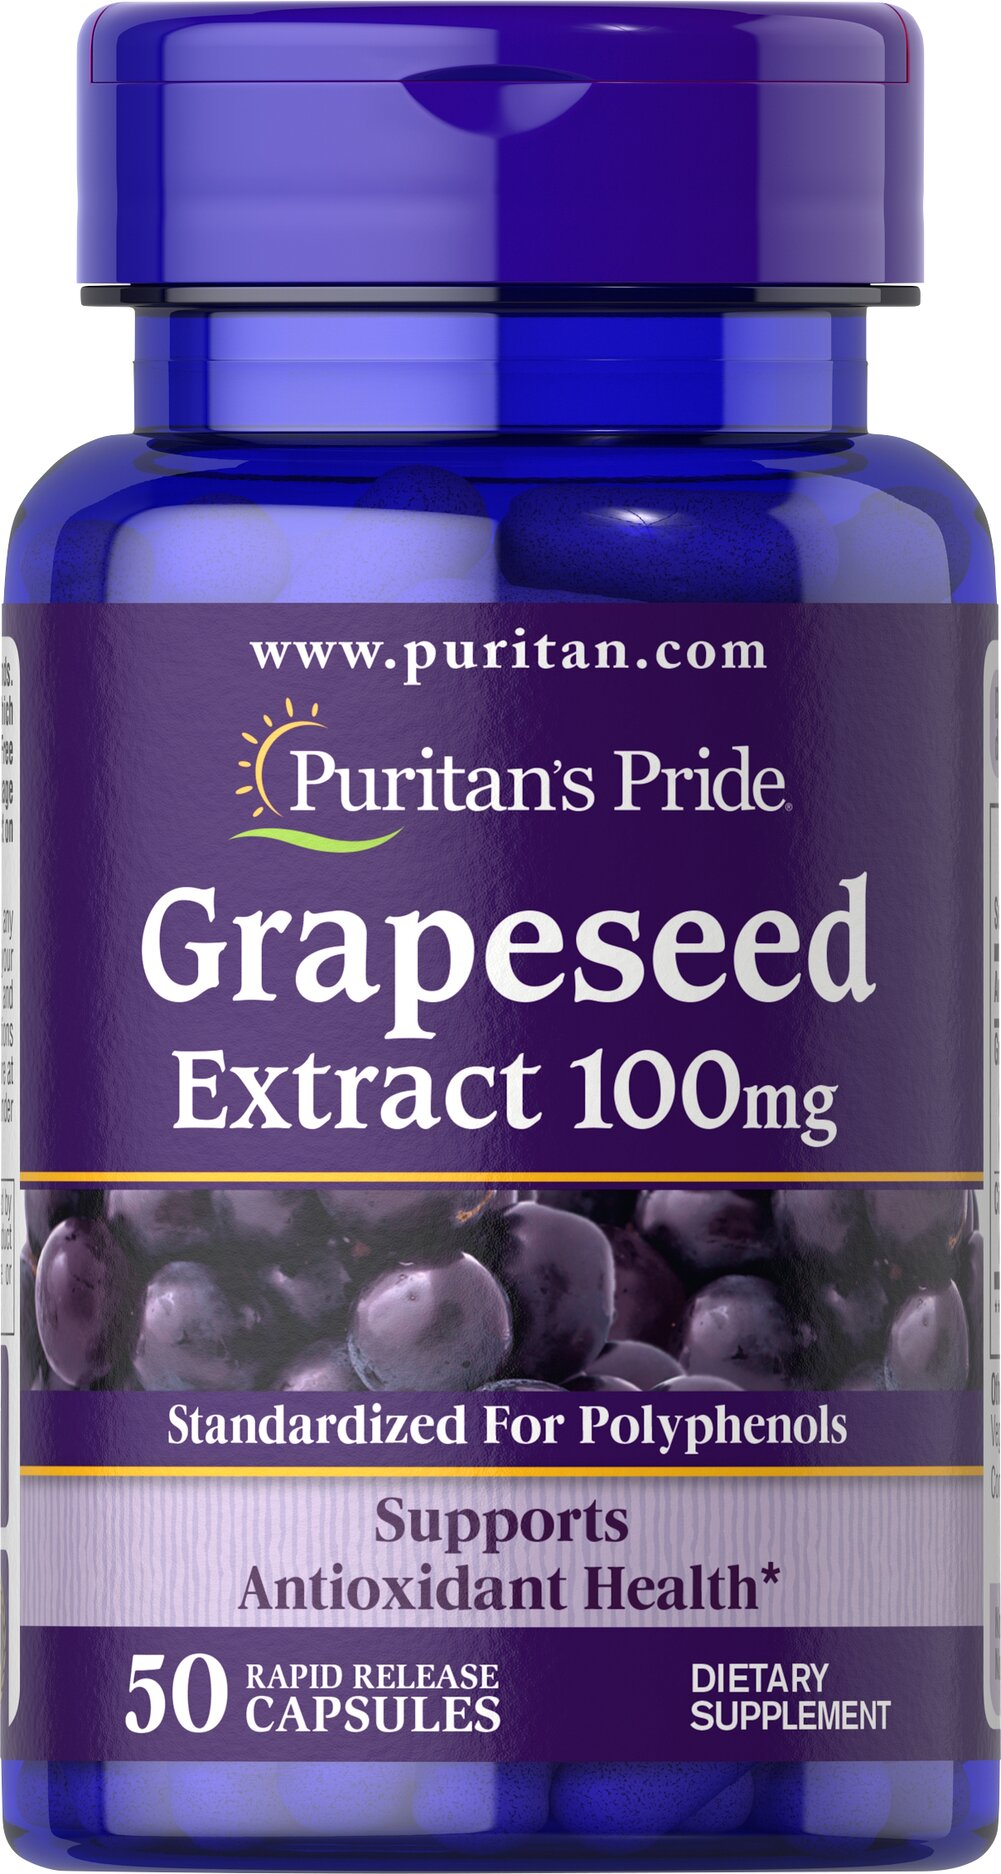 Grapeseed Extract 100 mg <p><strong></strong>Grapeseed Extract helps support antioxidant health.** Antioxidants are nutrients that help to counter the destructive nature of free radicals and assist in maintaining good health.** Grapeseed extract contains oligomeric proanthocyanidins (OPCs), which are naturally occurring bioflavonoids. Standardized to contain 50% Polyphenols. Adults can take one capsule three times daily.<br /></p> 50 Capsules 100 mg $6.49